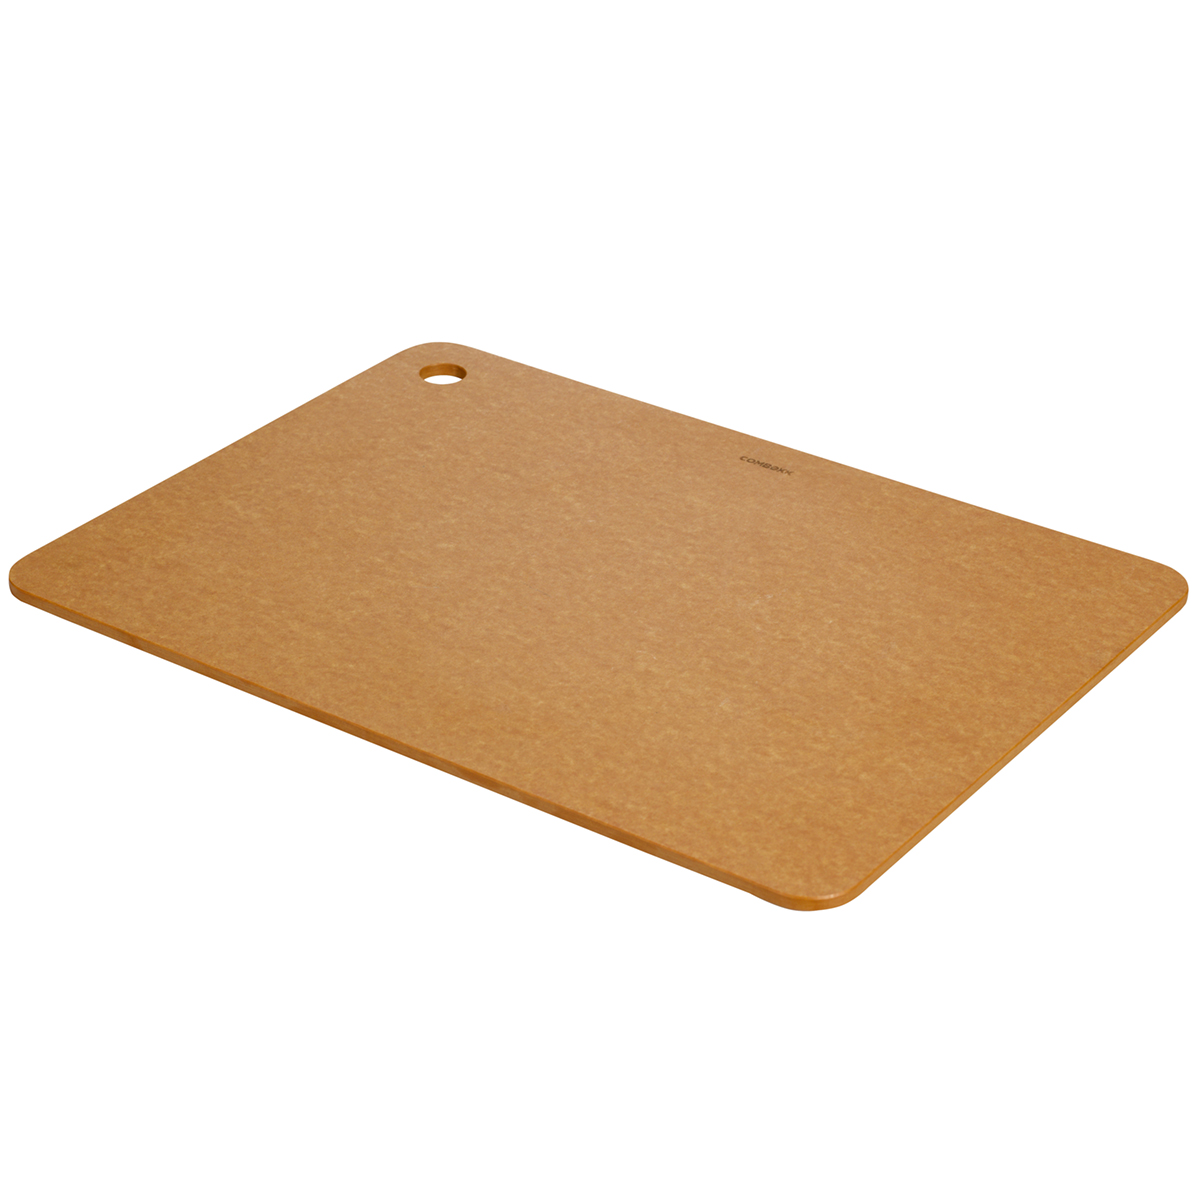 Recycled paper cutting board natural 24 x 40